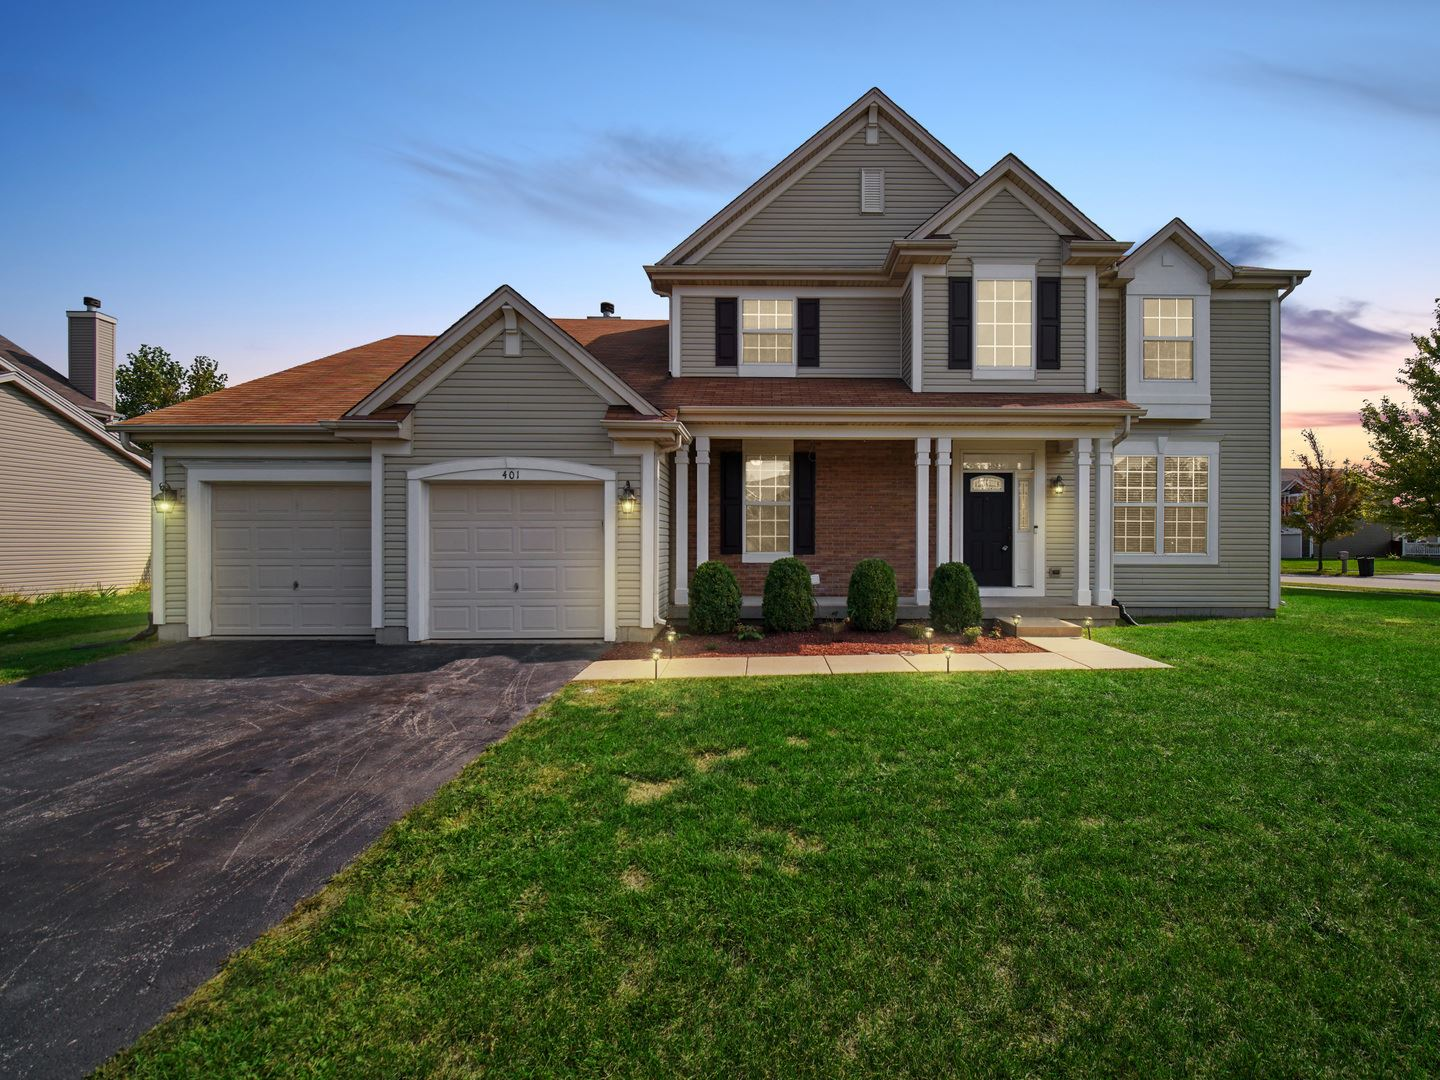 Photo of 401 COTONEASTER Court, Oswego, IL 60543 (MLS # 10860532)